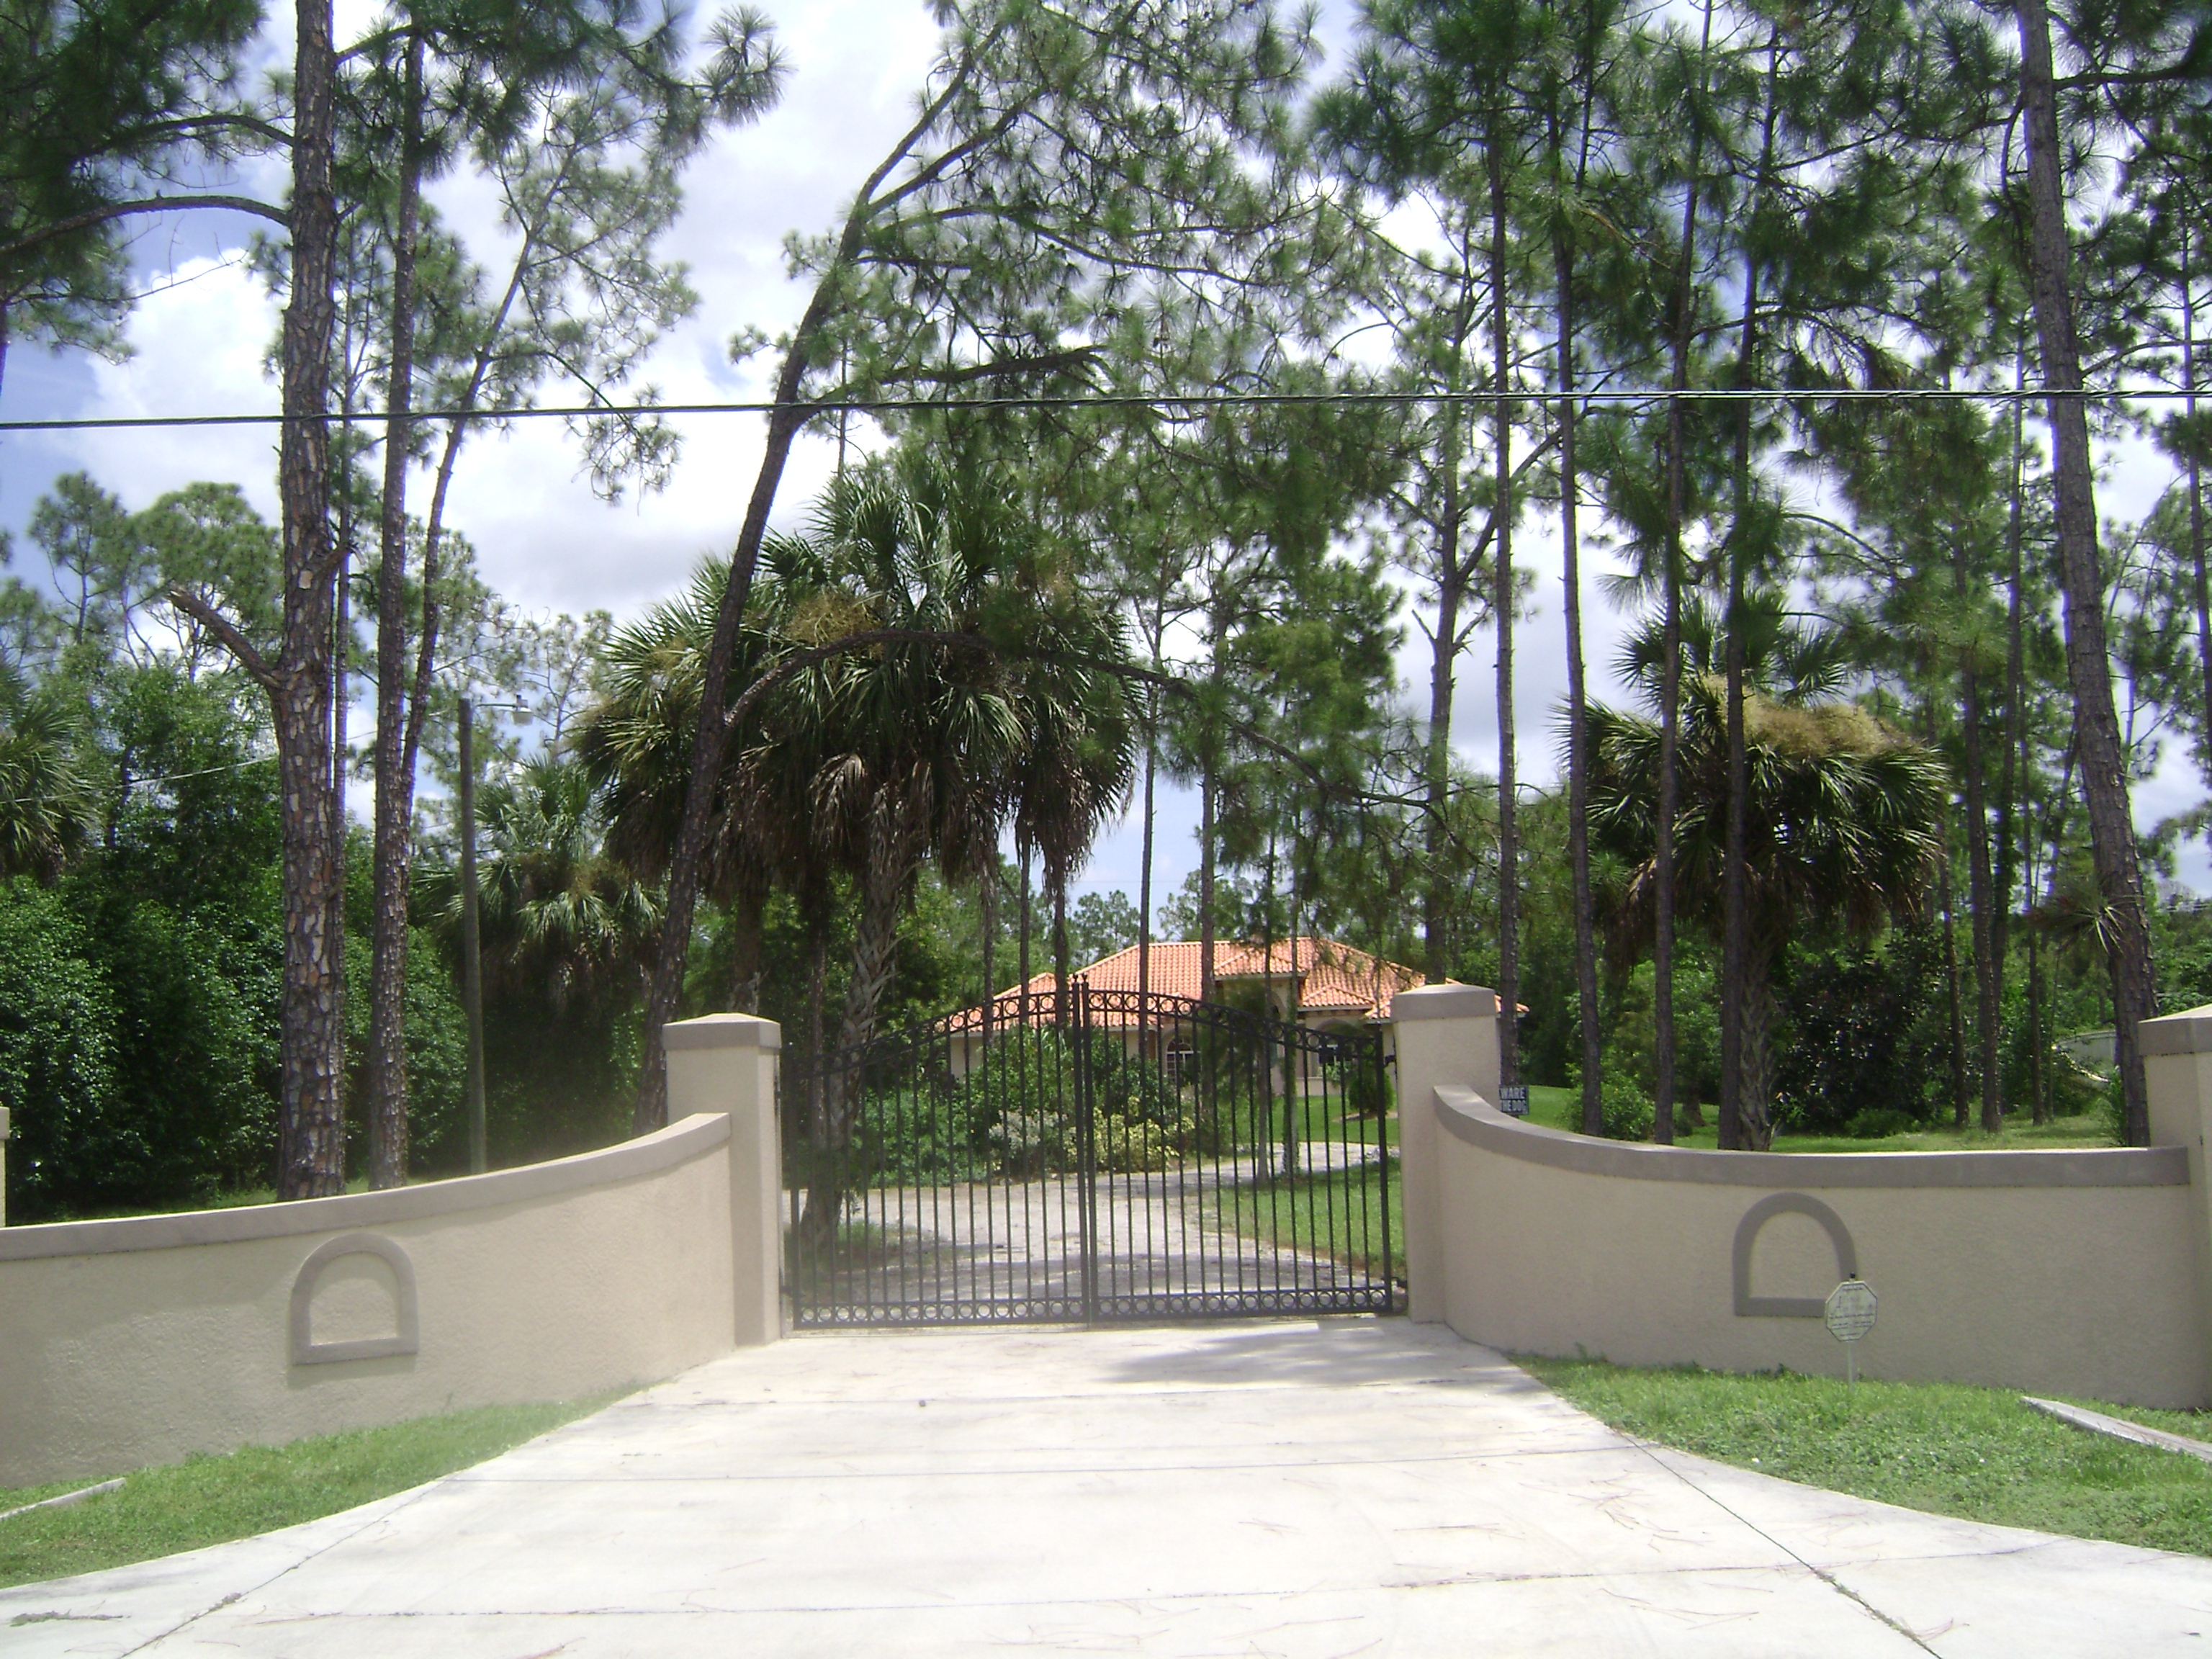 Home in Golden Gate Estate in Naples, Florida.